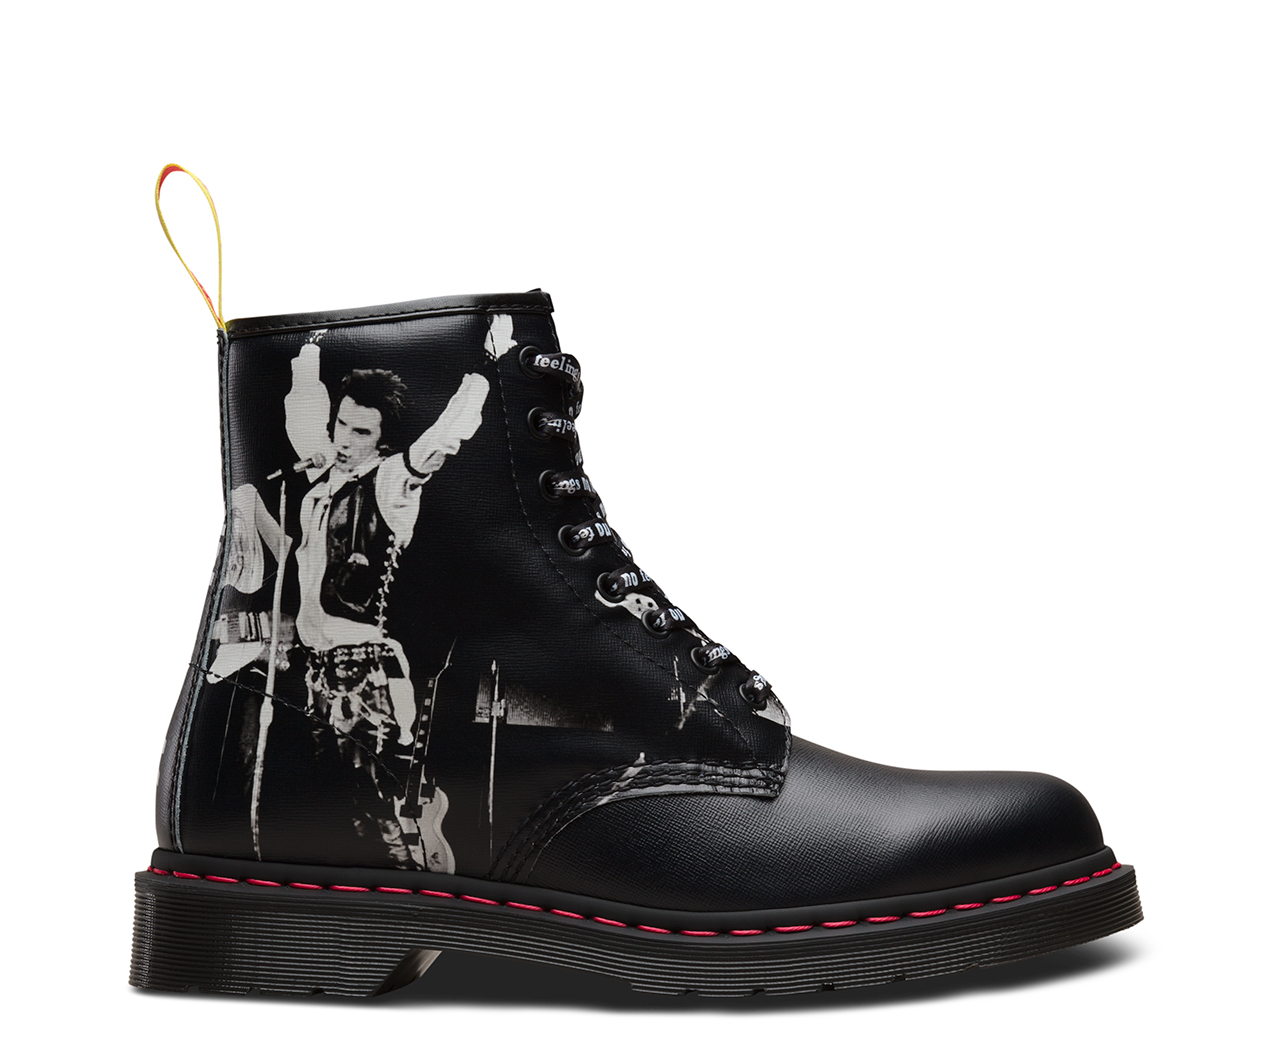 DrMartens Site Sex Officiele ViciousLaarzen Pistols 1460 cR3qjL54A